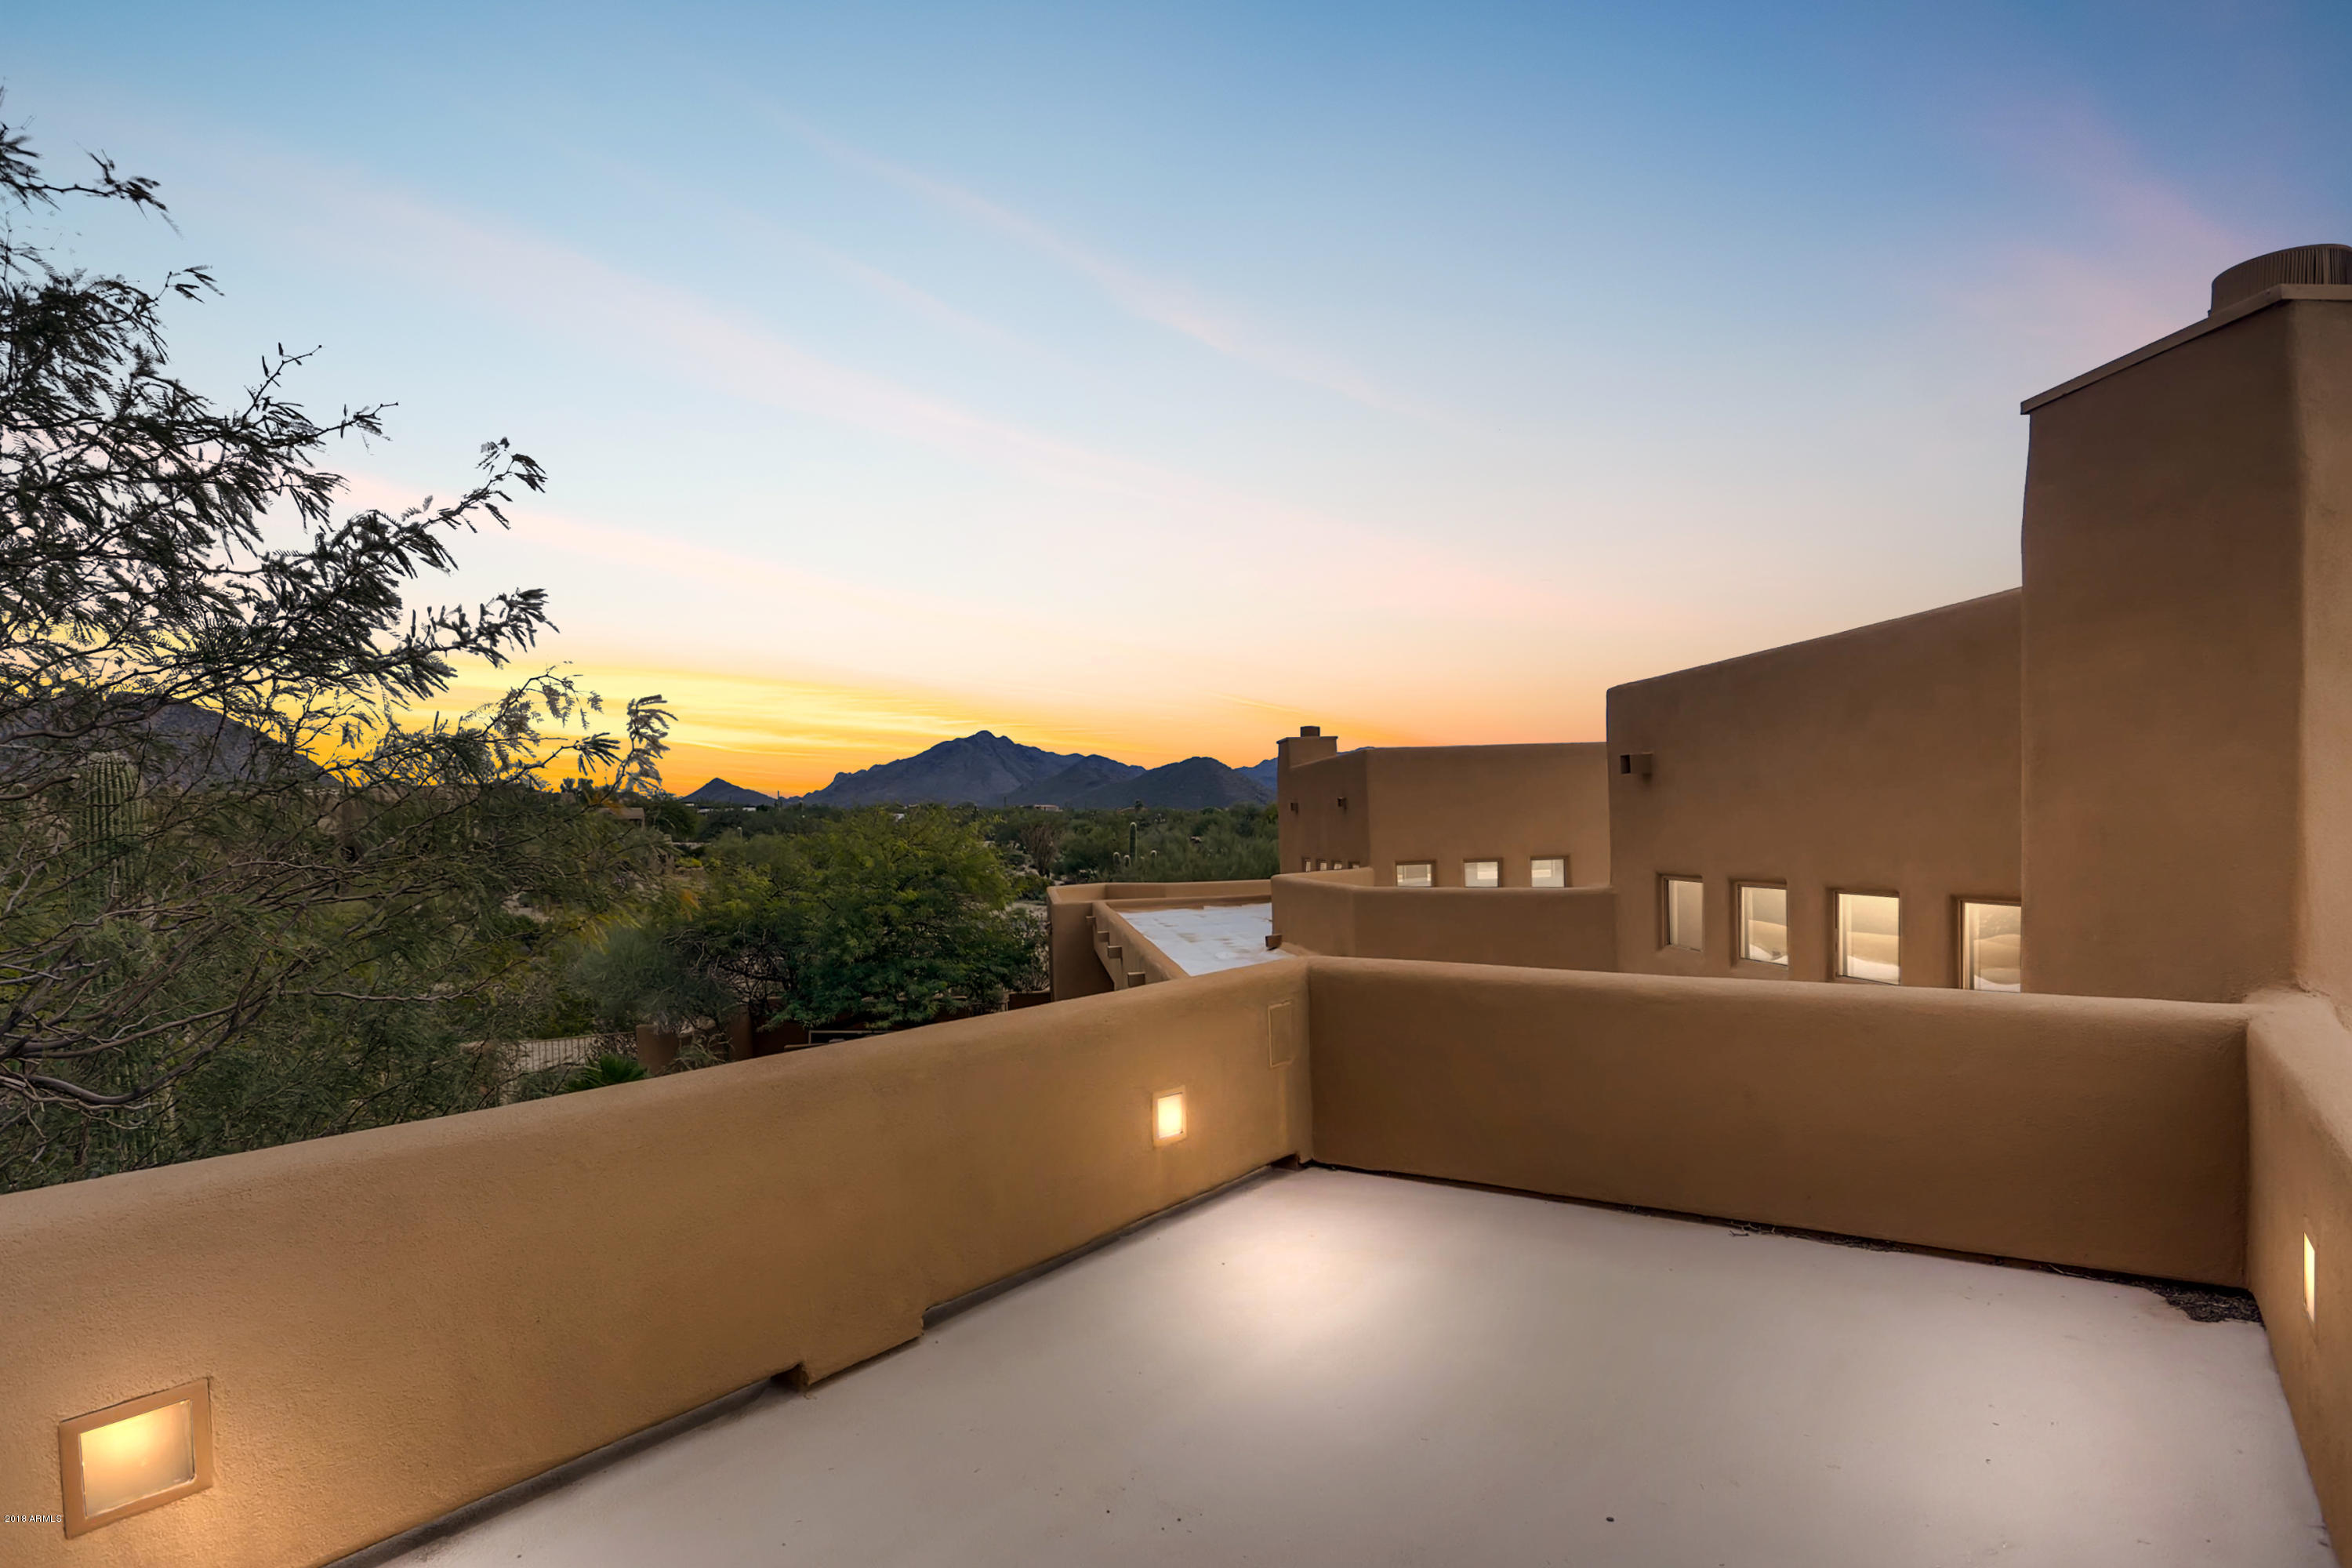 MLS 5861882 9330 E Buckskin Trail, Scottsdale, AZ 85255 Scottsdale AZ Gated